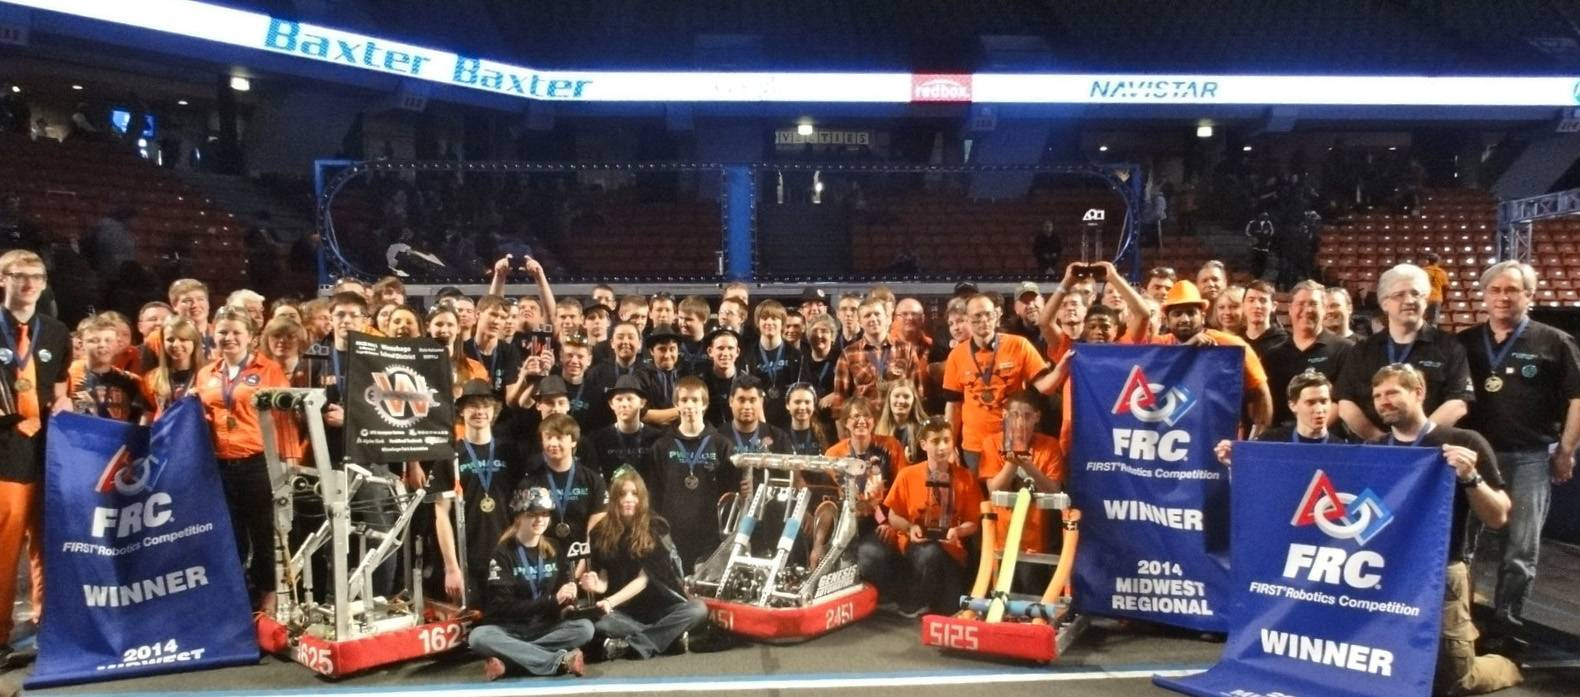 Team PWNAGE Robotics won the FIRST FRC Midwest Regional competition in April in Chicago.